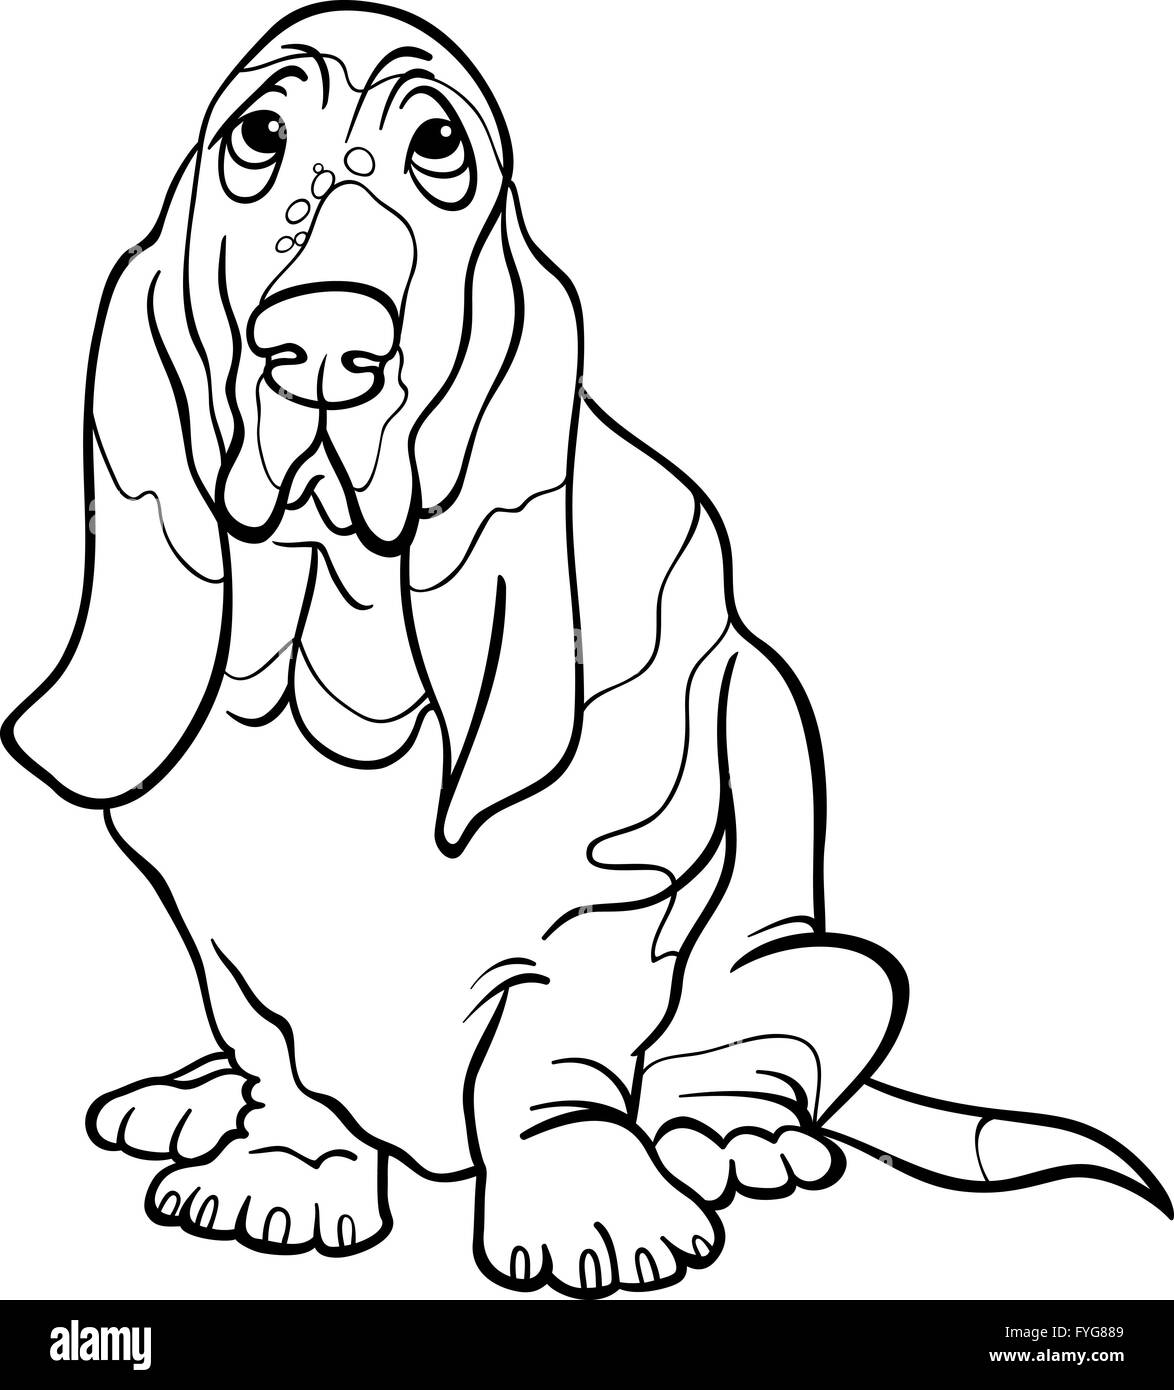 bassett coloring pages - photo#7